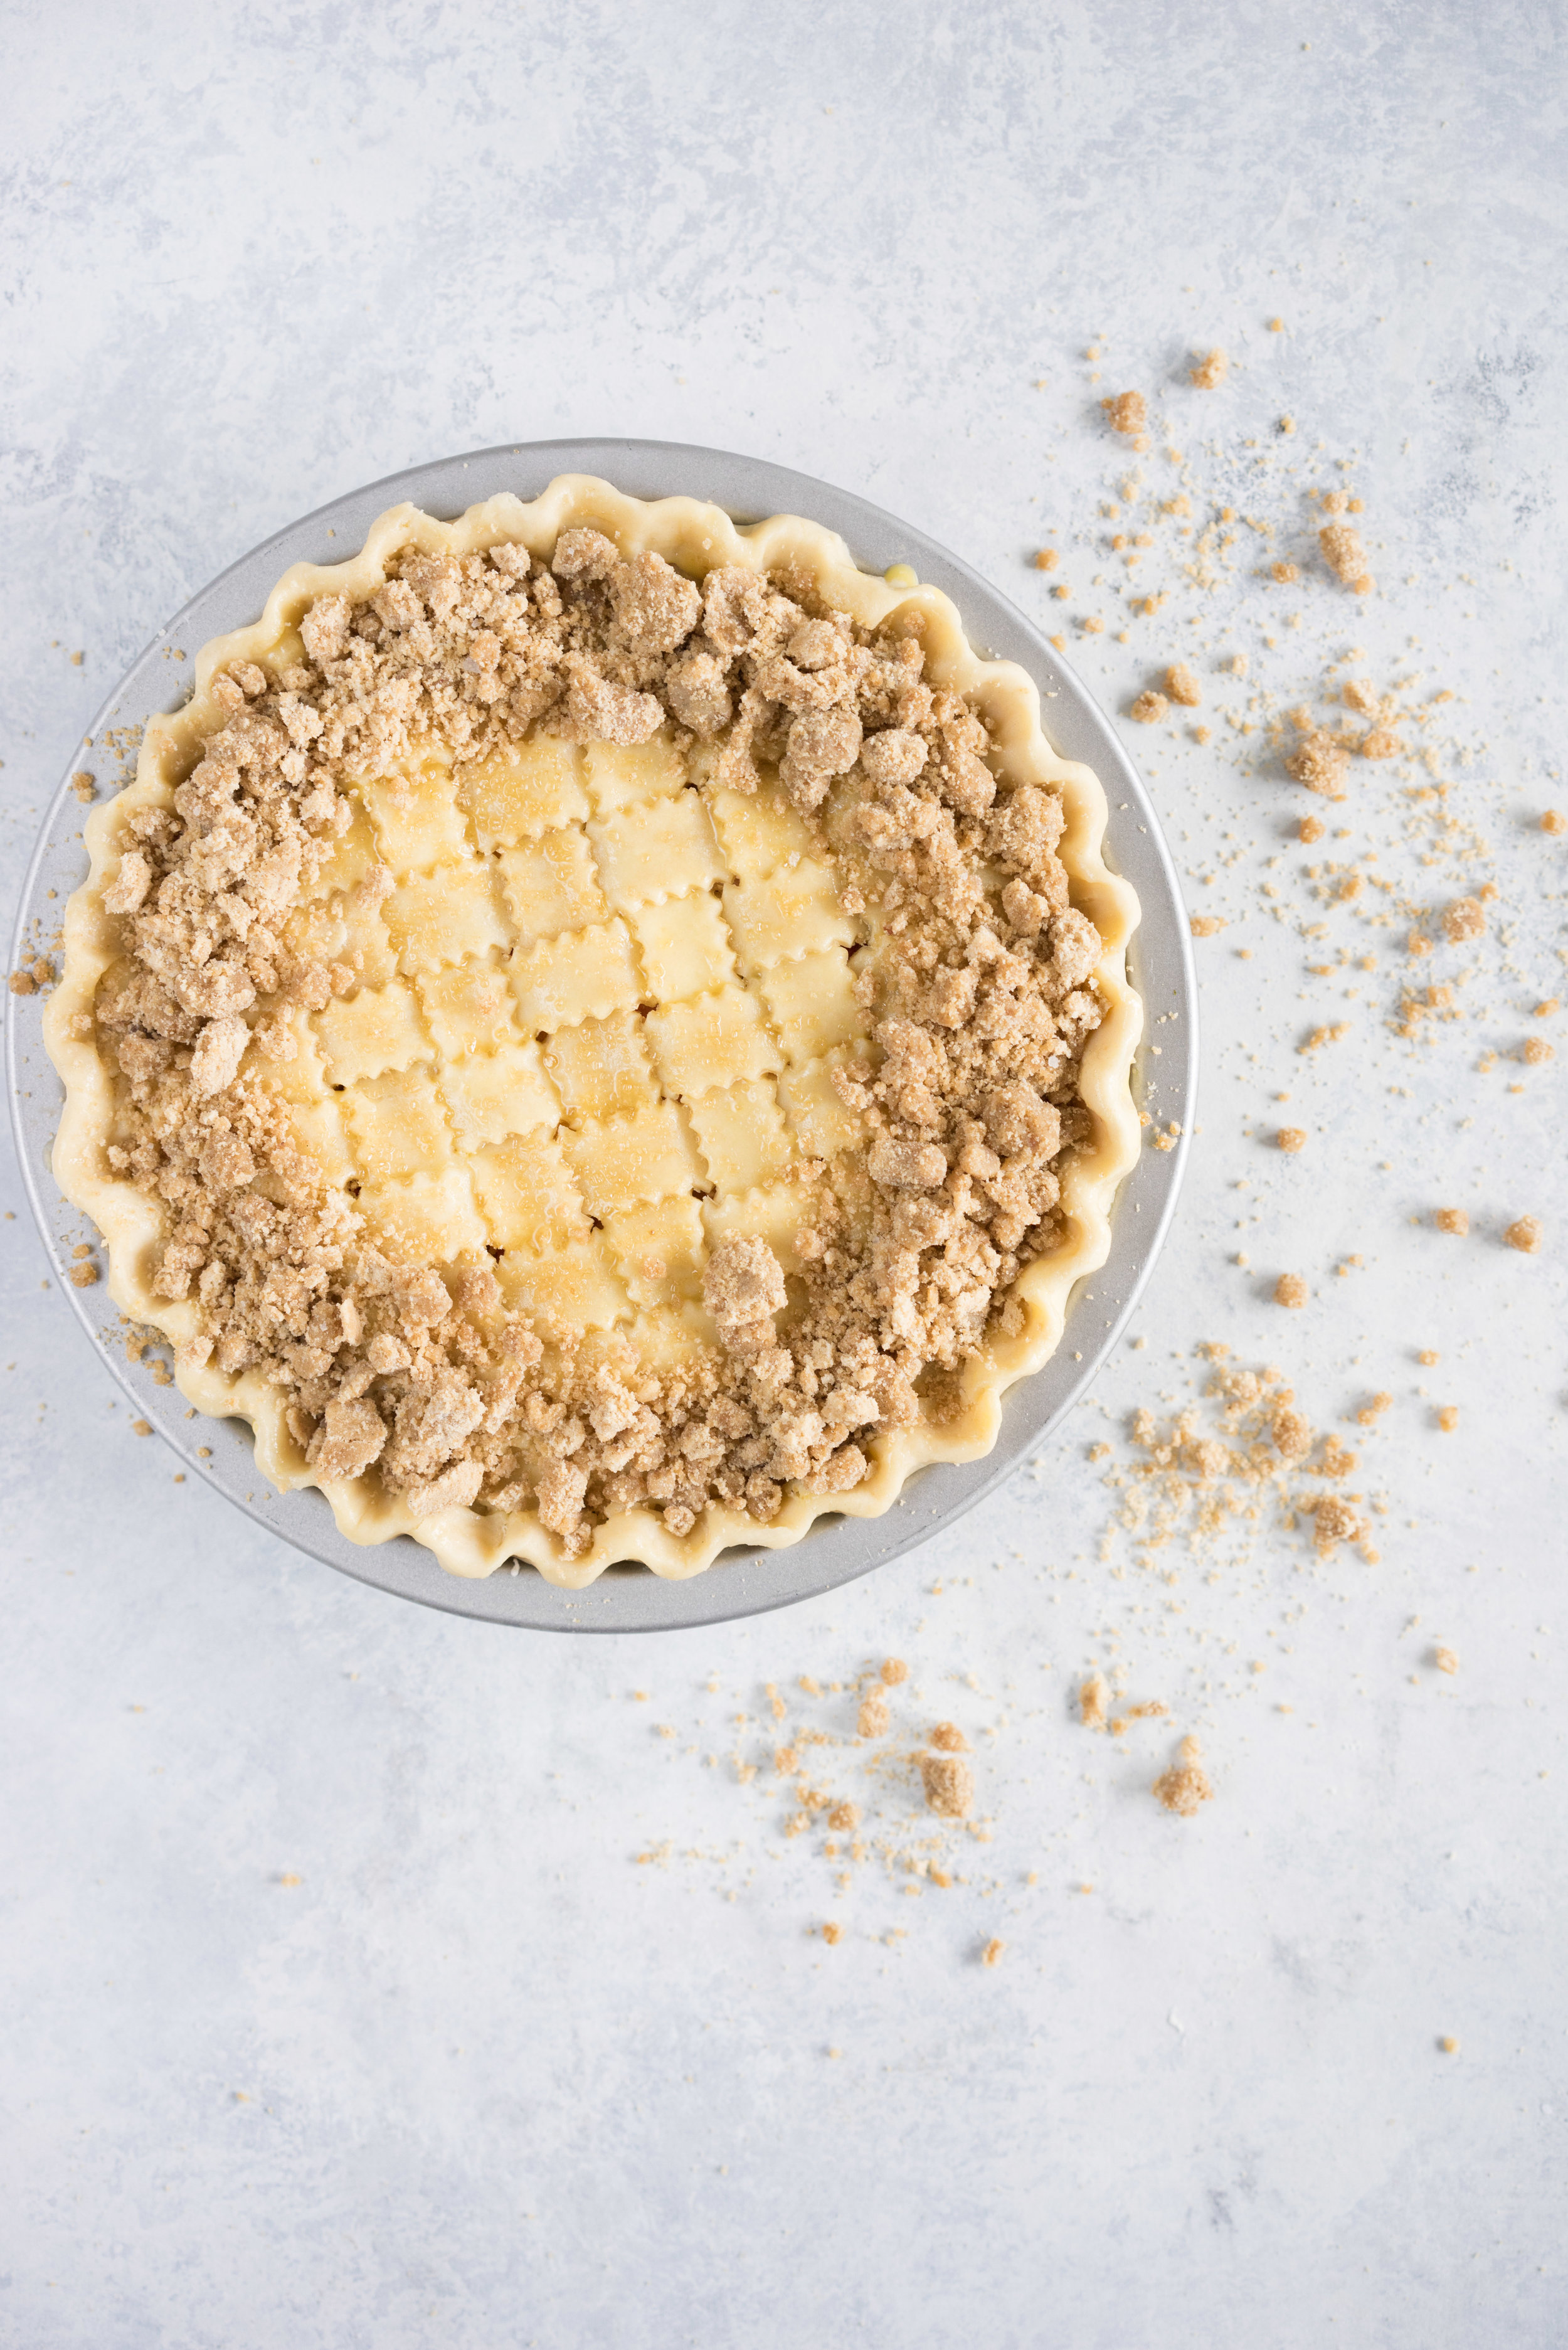 Strawberry and nectarine pie with a brown butter streusel